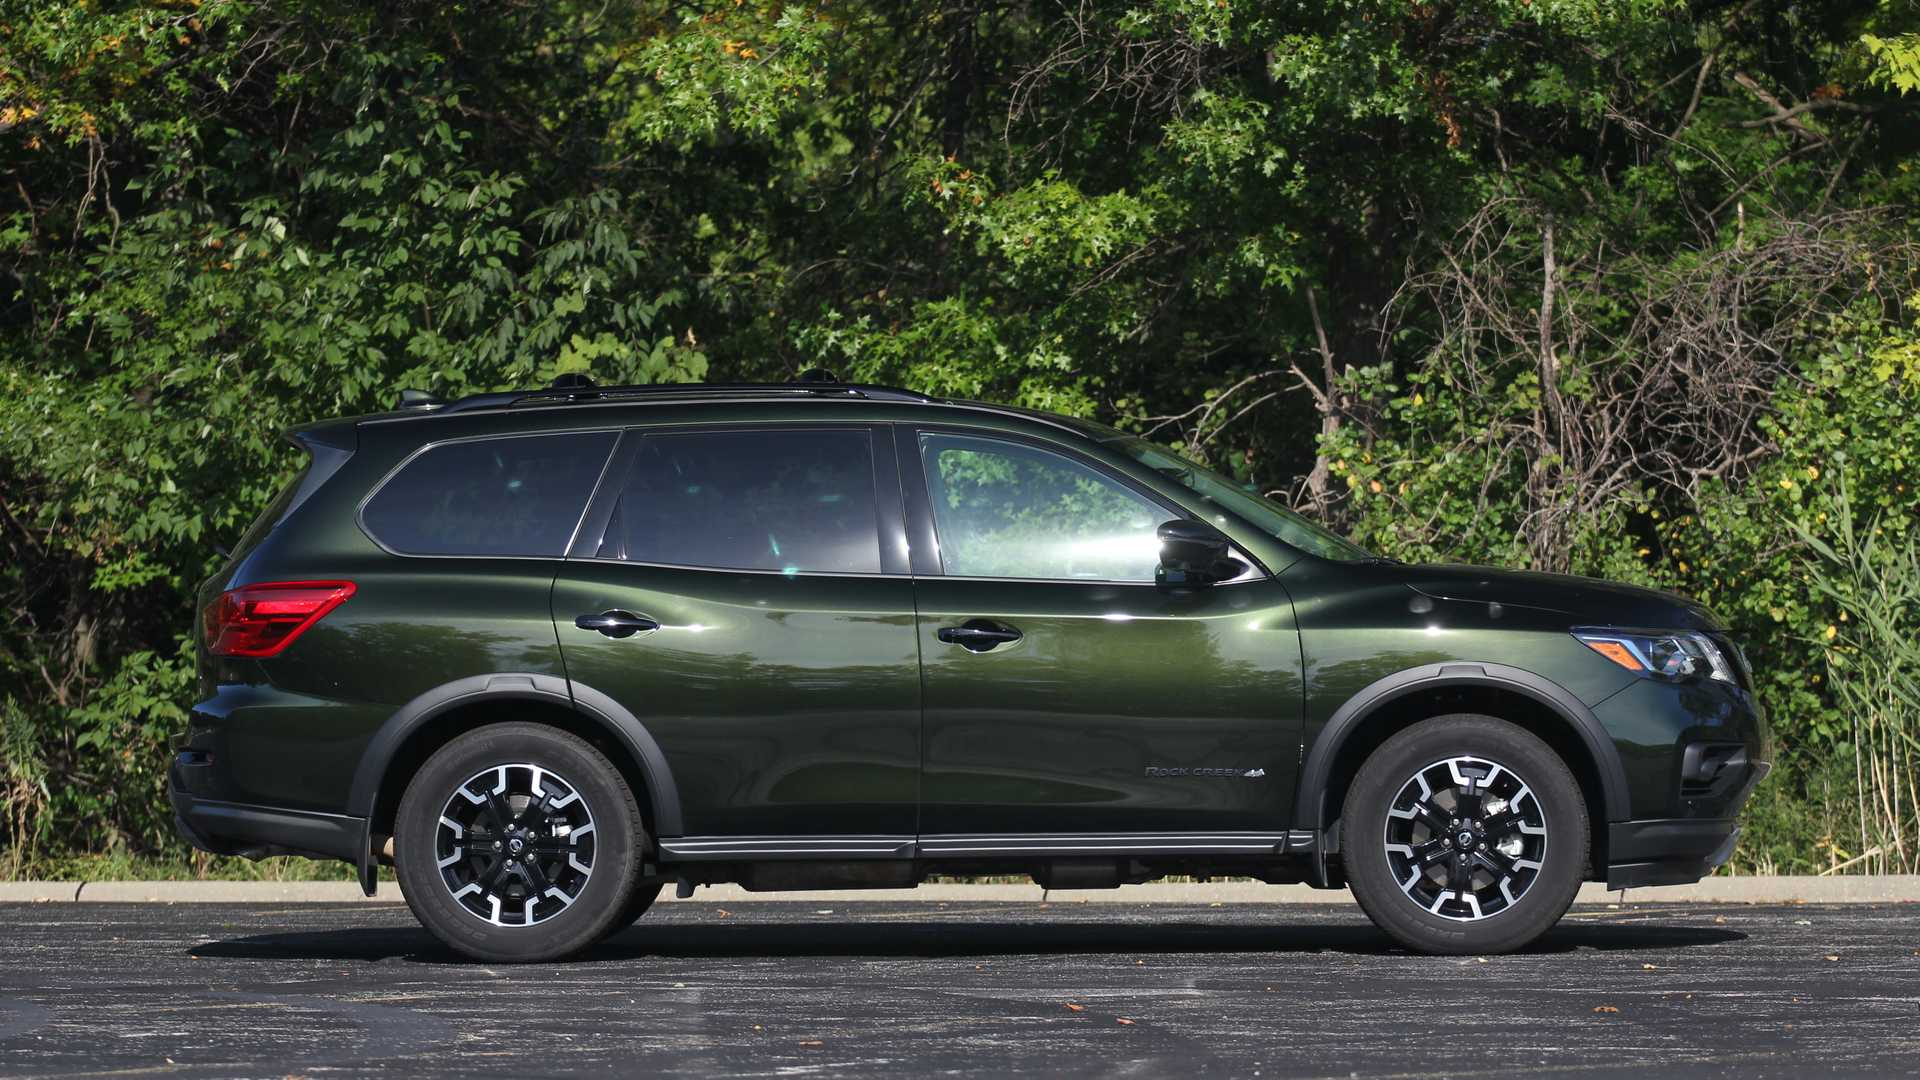 2020 Nissan Pathfinder Rock Creek Edition: Pros And Cons